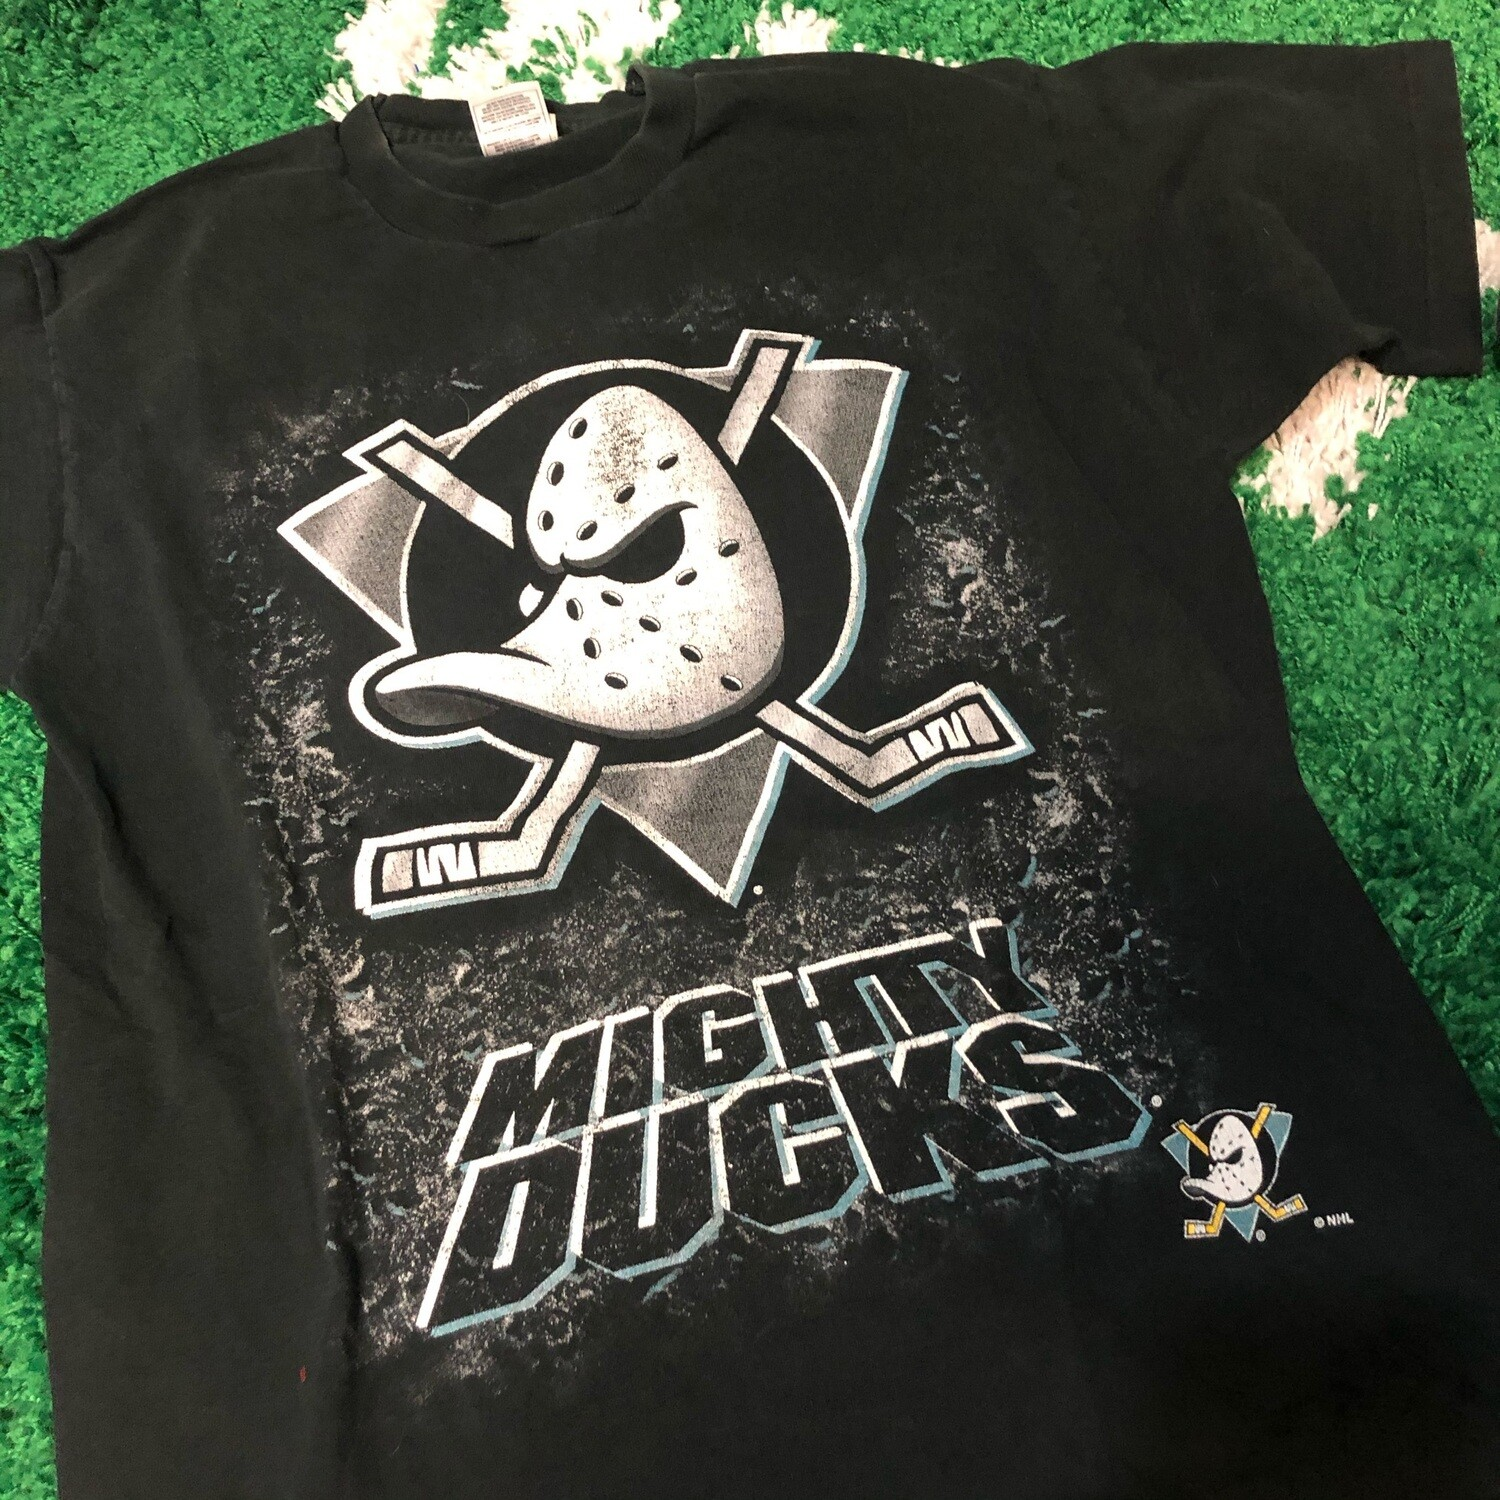 Mighty Ducks Tee Black Size Large